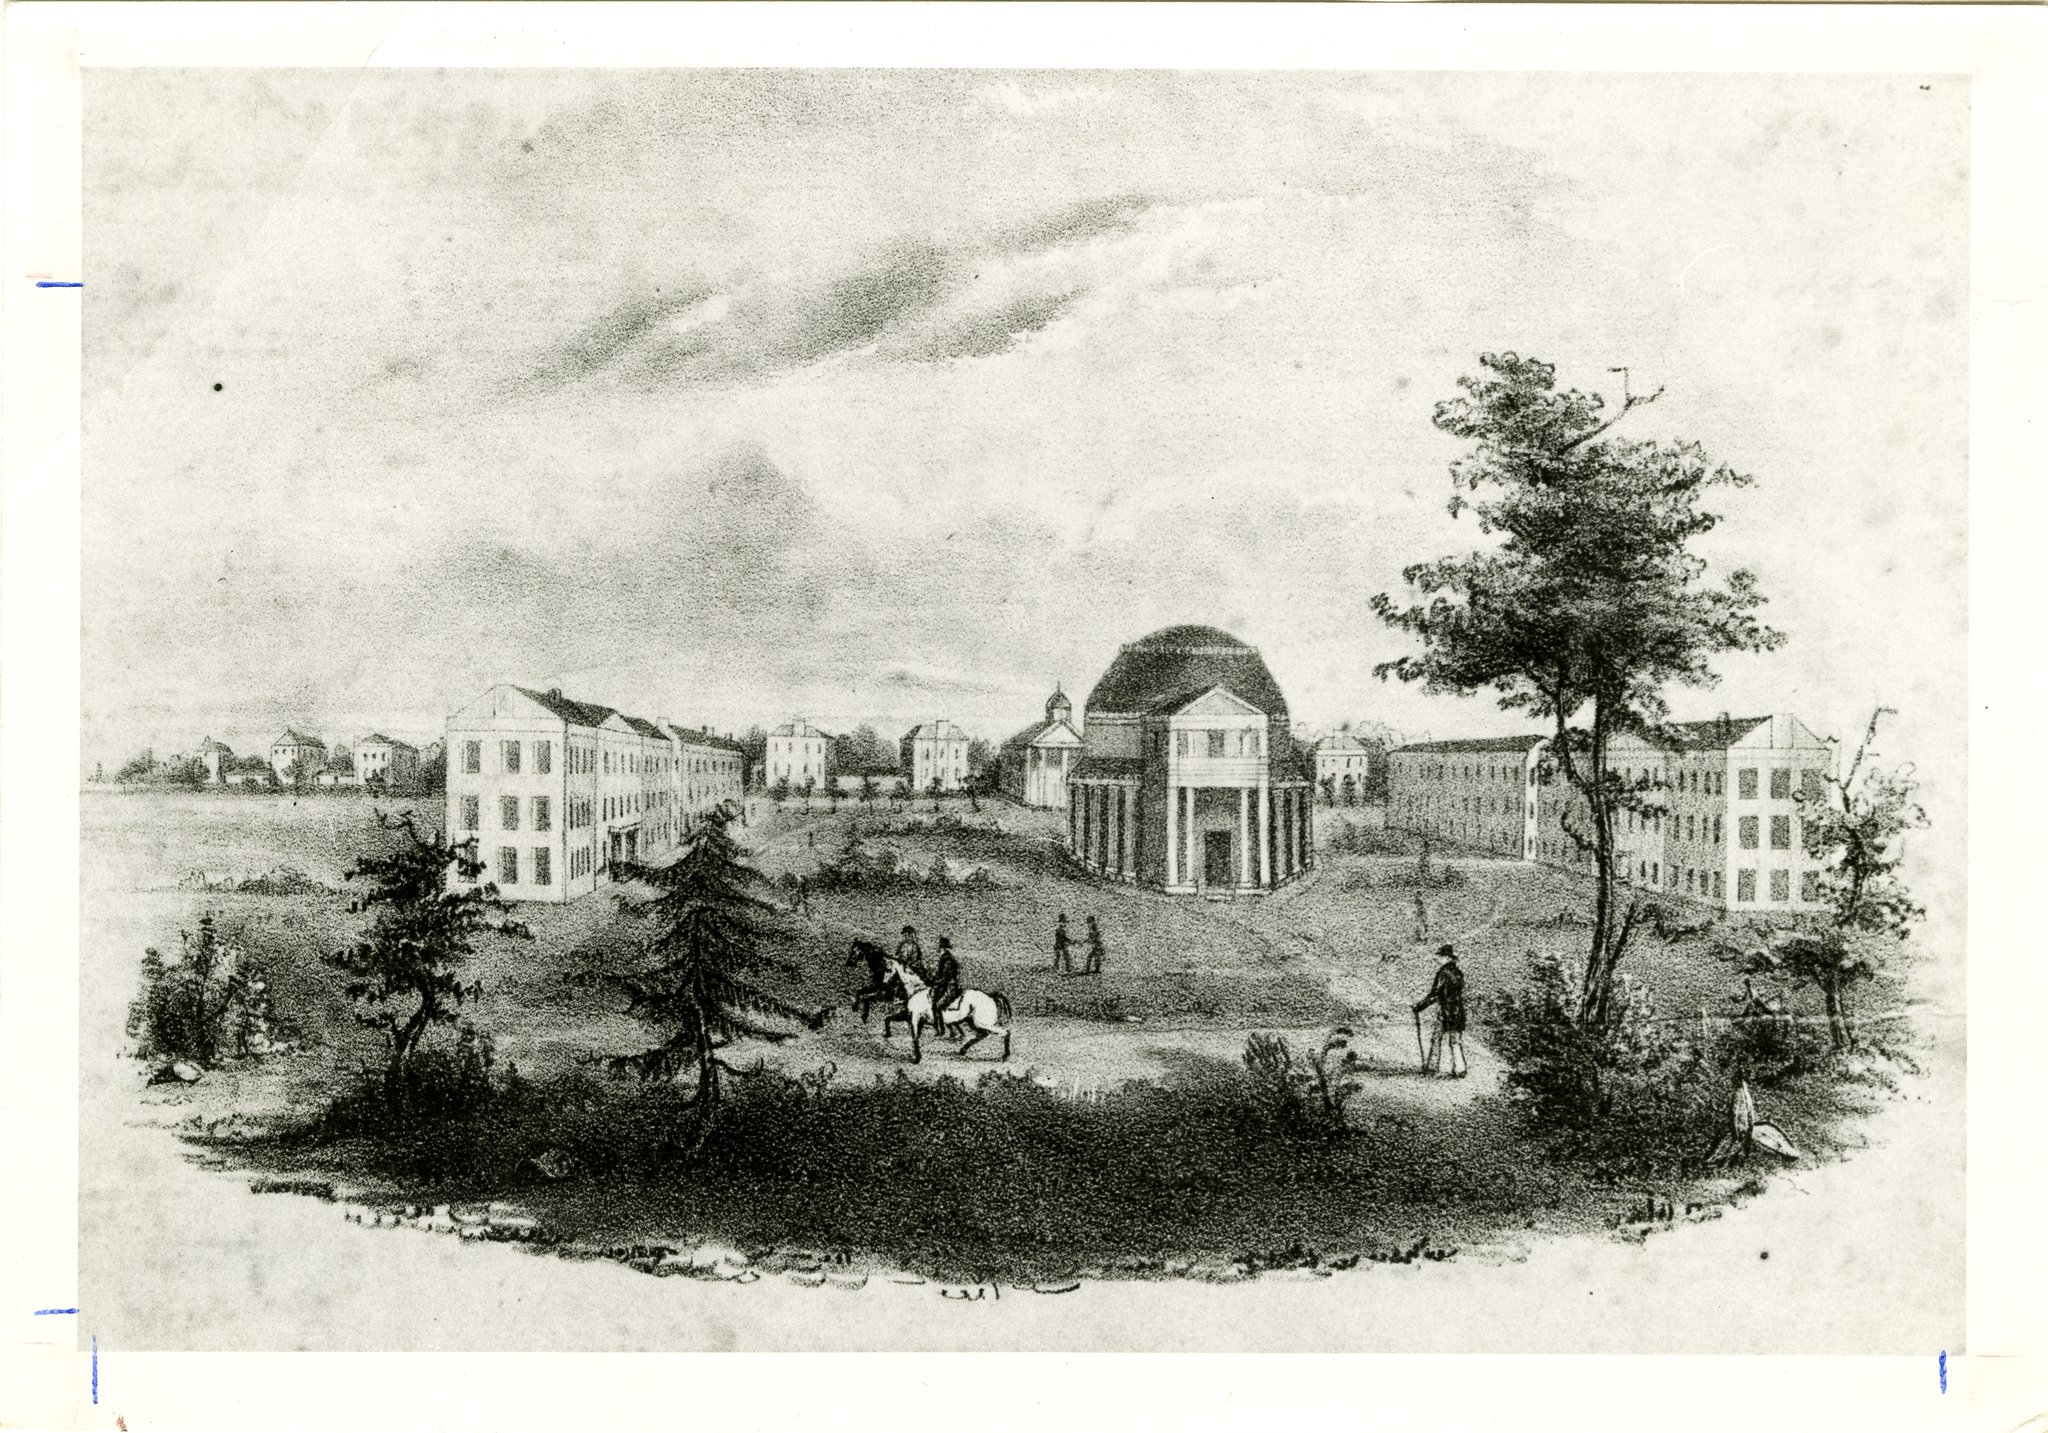 A Christmas present was given to the University of Alabama on Dec. 25, 1824